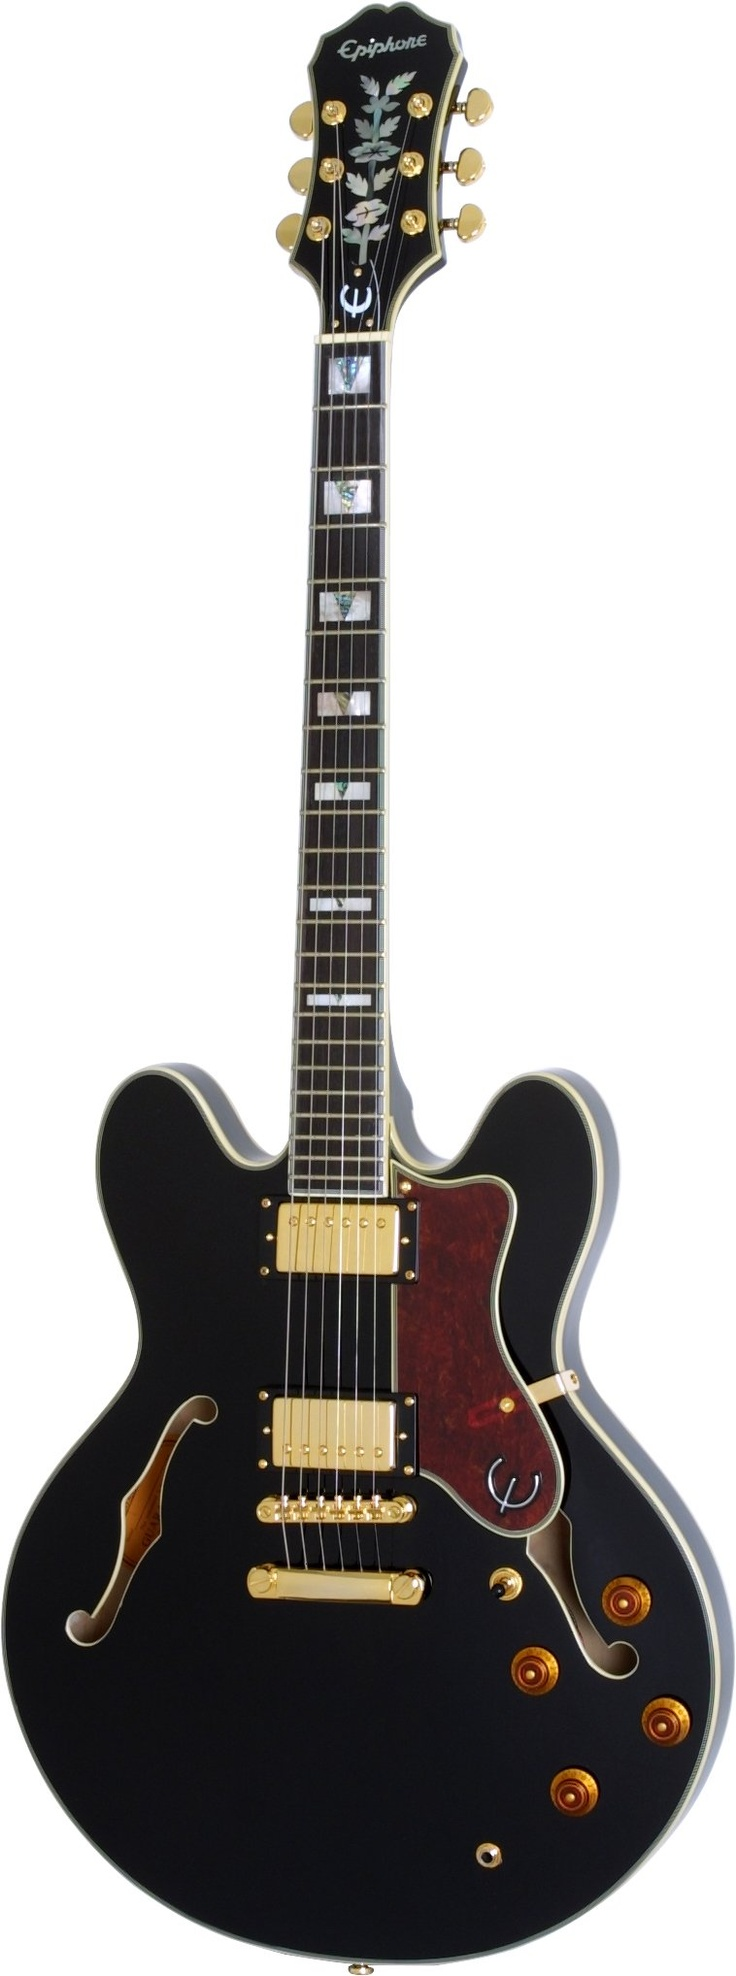 Epiphone Sheraton Archtop. I will have one of these someday.